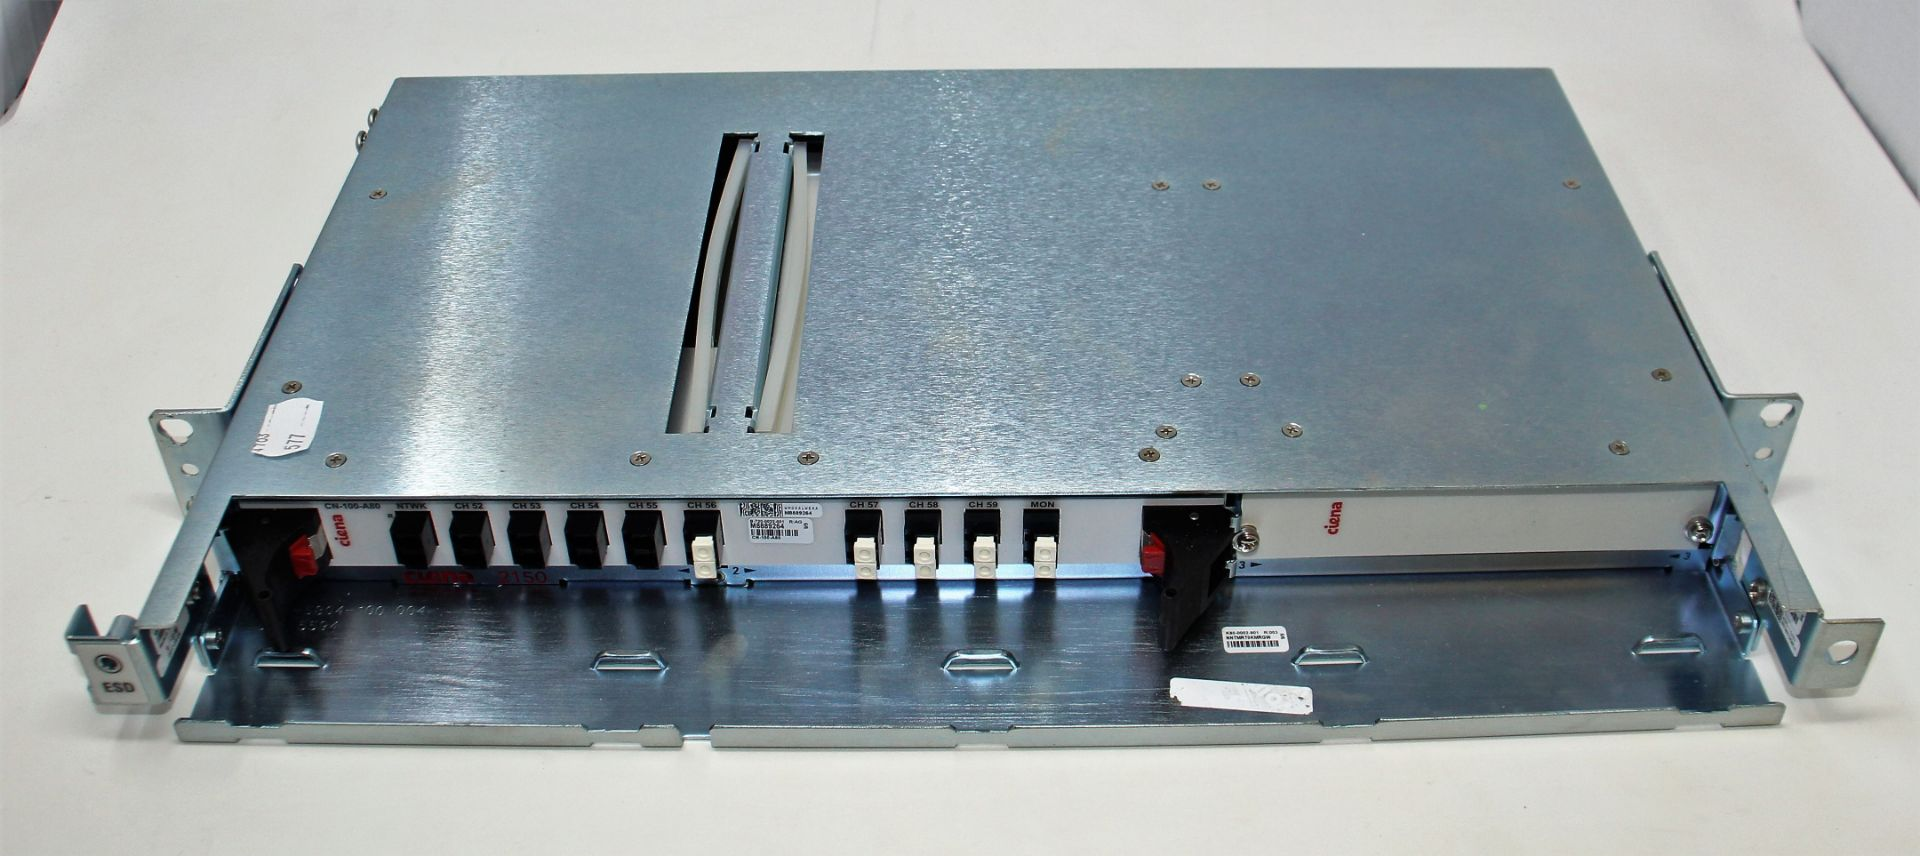 A pre-owned Ciena CN-100-A80 B-720-0022-001 WM0AALWEAA M8889291 DWDM Module (Untested, sold as - Image 2 of 3